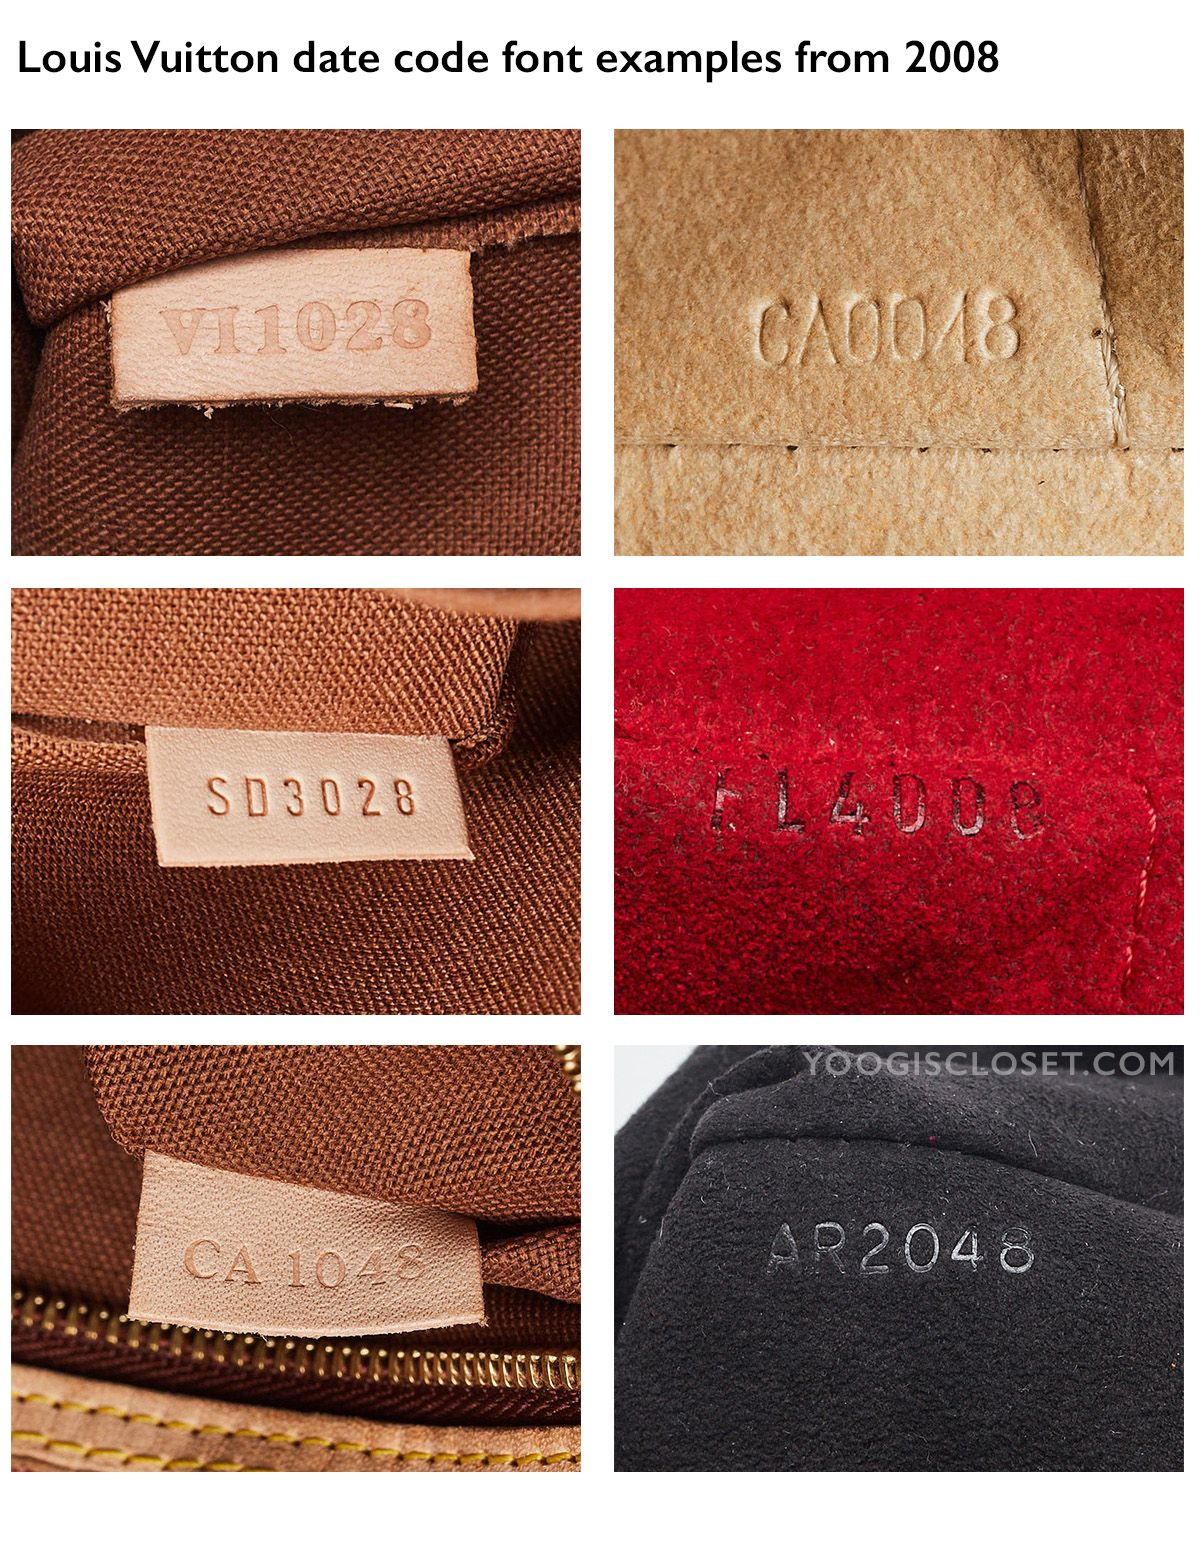 All About Louis Vuitton Date Codes Louis Vuitton Bag Real Louis Vuitton Louis Vuitton Handbags